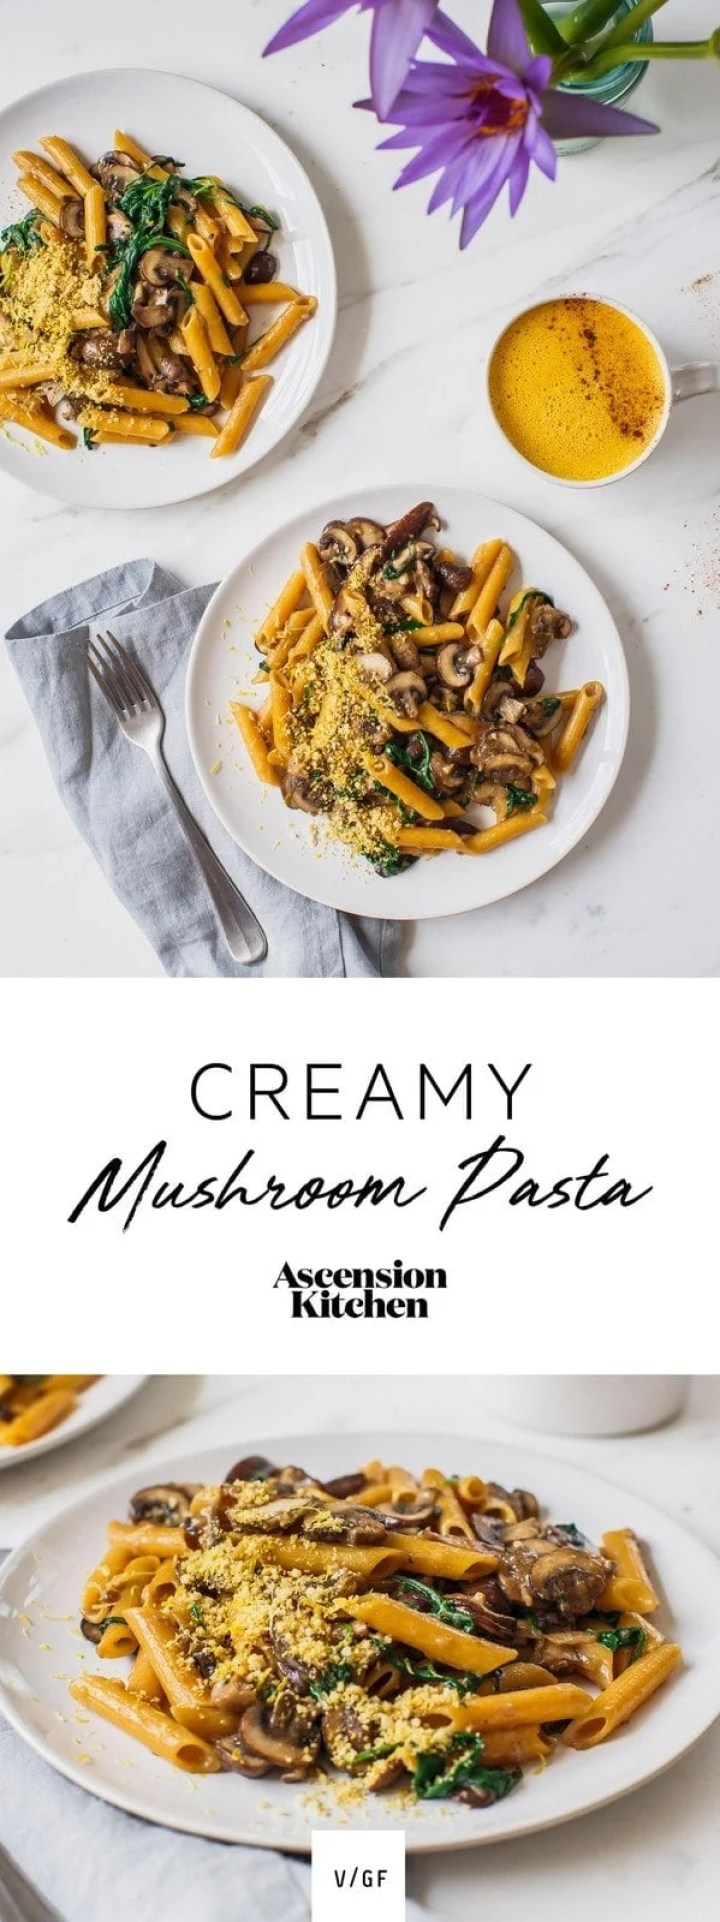 A quick and simple vegan Creamy Mushroom Pasta made with gluten free red lentil penne. ~ Vegan mushroom pasta recipe, gluten free pasta recipe ~ #AscensionKitchen // Pin to your own inspiration board! //